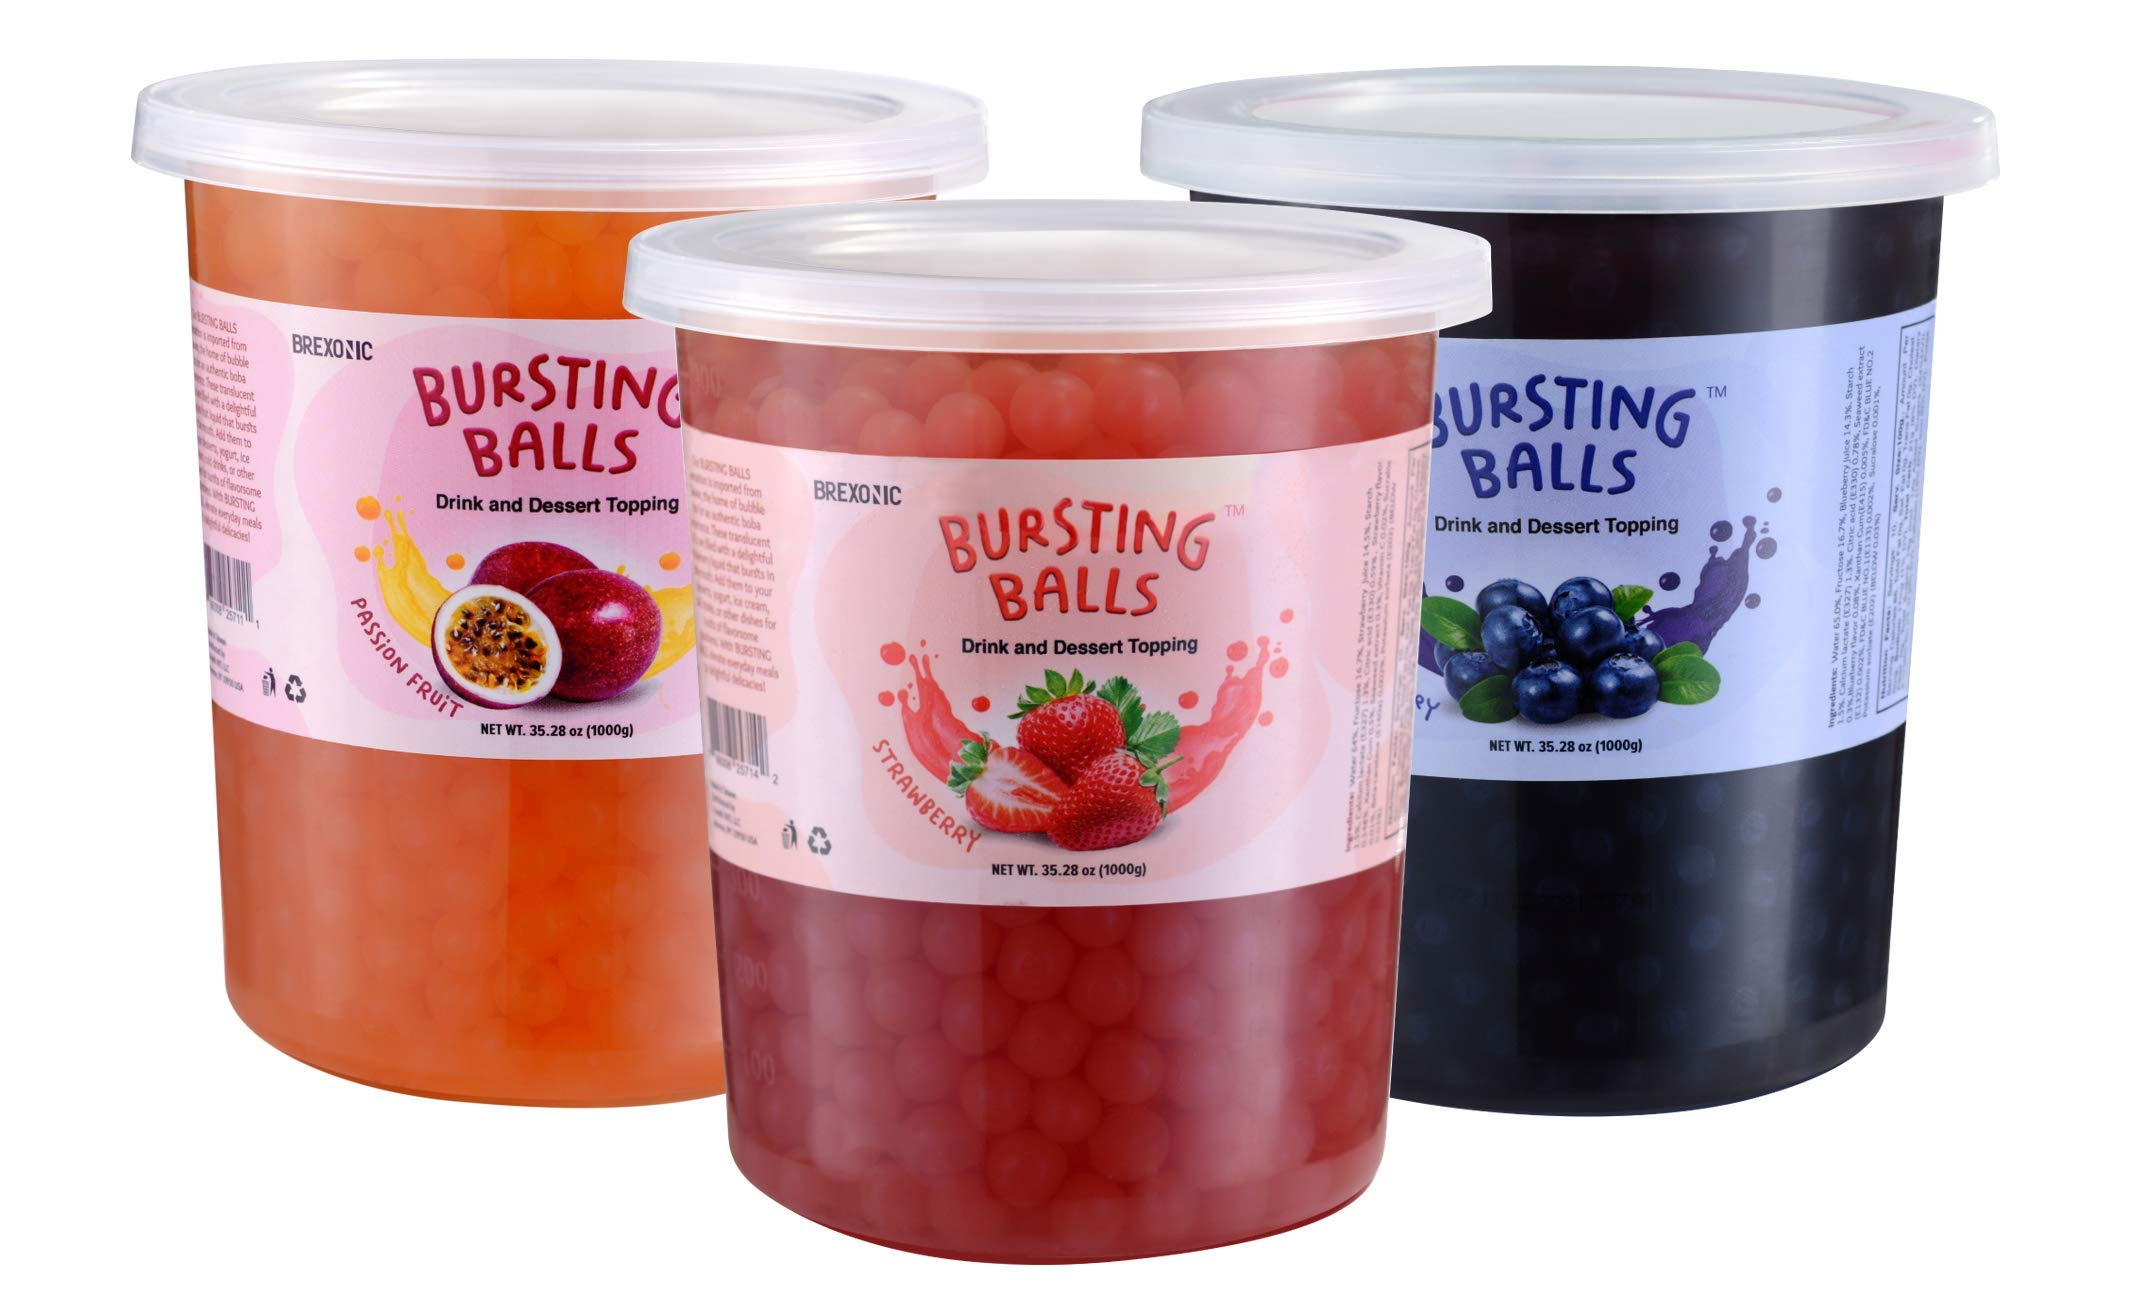 Popping Boba Pearls Bursting Tea Balls Drink & Dessert Topping Strawberry Mango Blueberry Passion Fruit Flavored Bubble Tea Pearls (Strawberry, Passion Fruit, Blueberry, 2 LB 3 Pack)